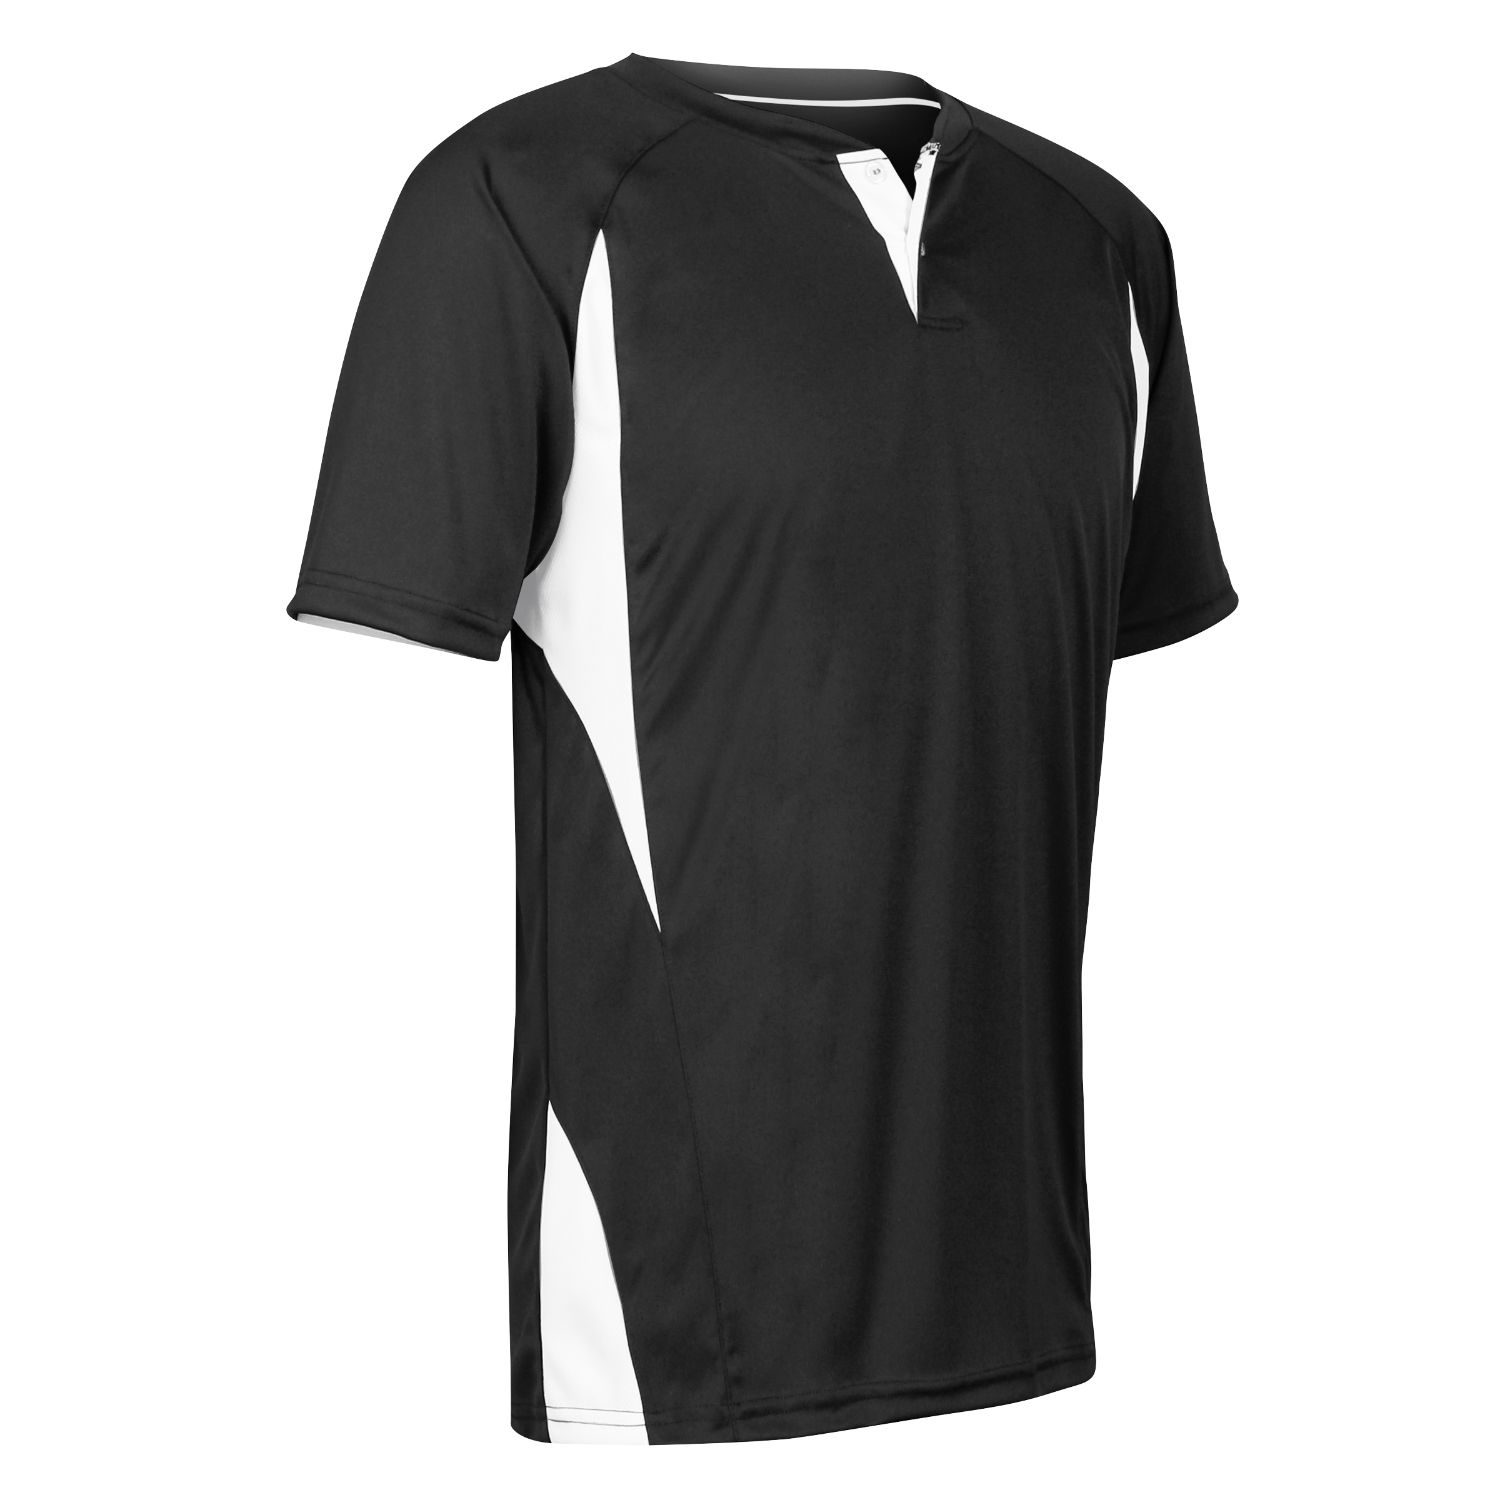 Champro Adult 2 Button Wild Card Jersey Black White Small